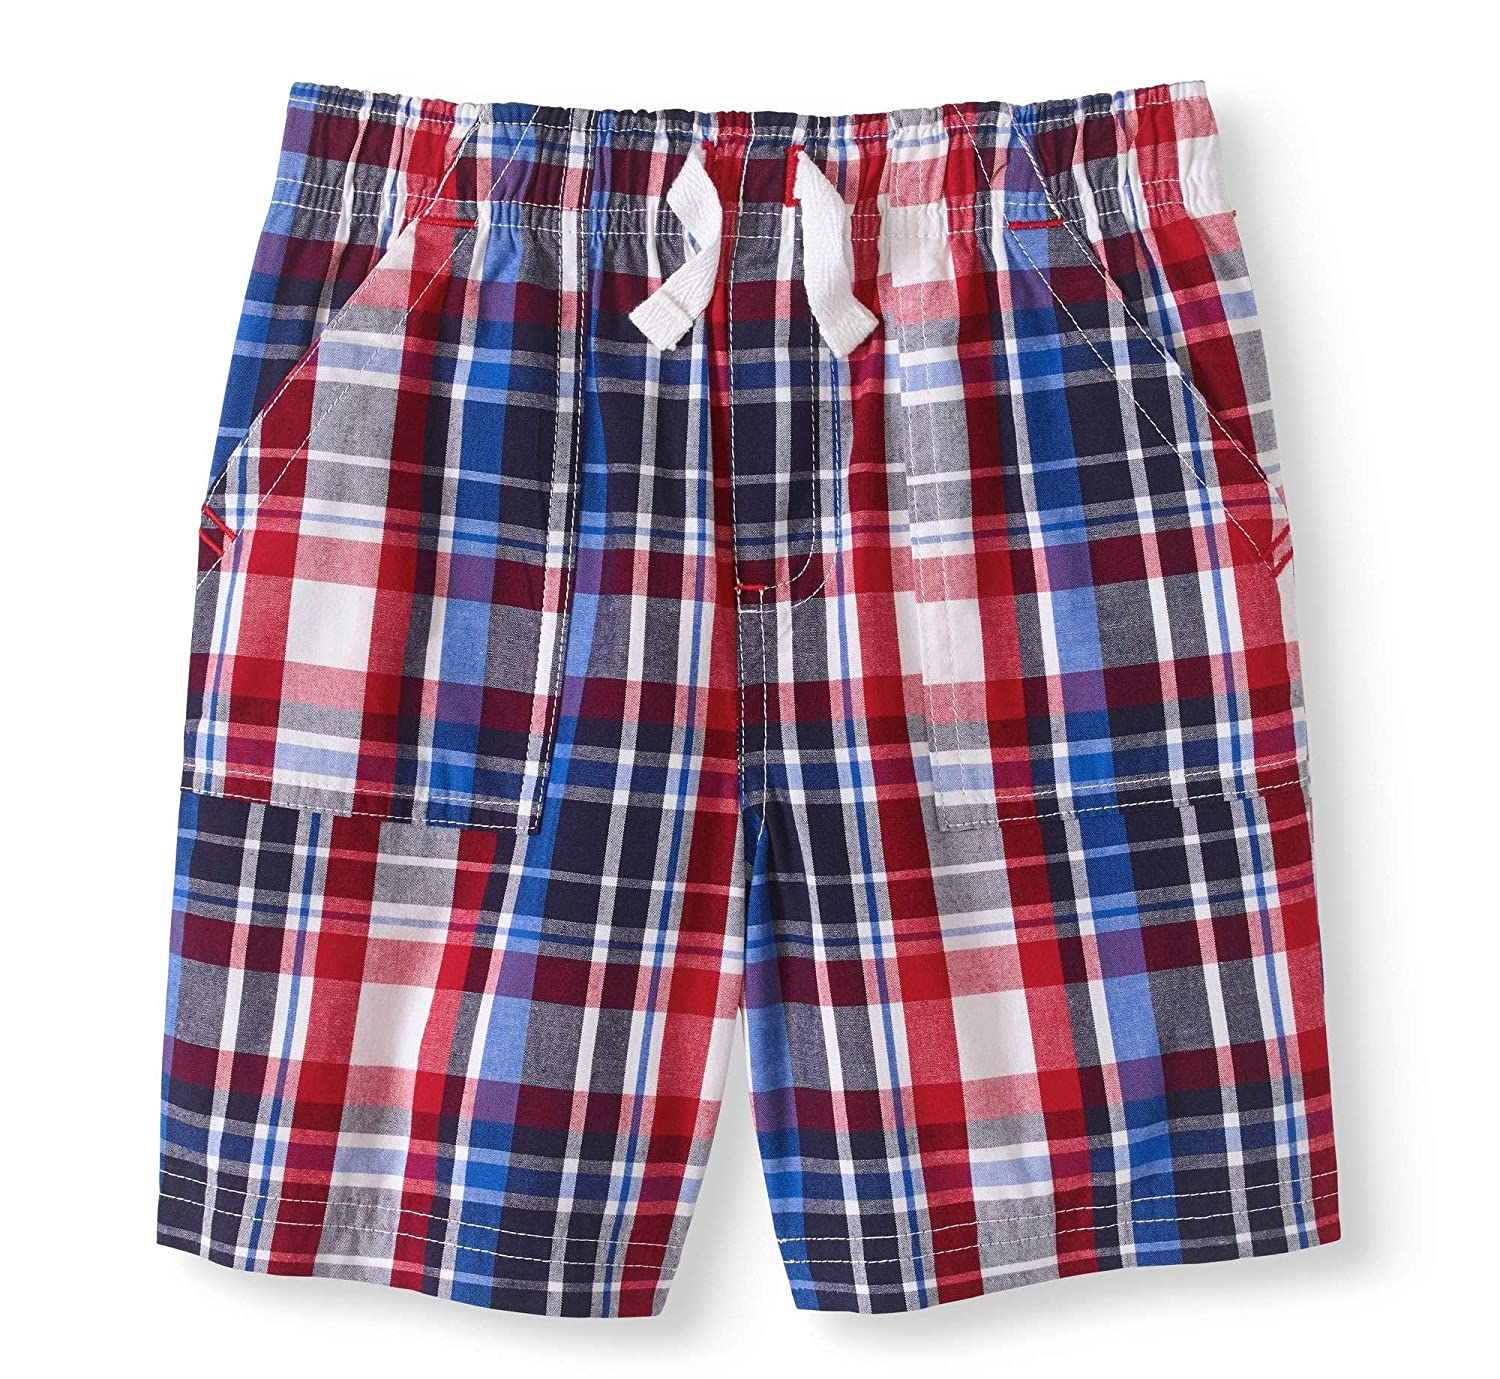 Patriotic Boys Shorts, Red White and Blue Stars and Stripes